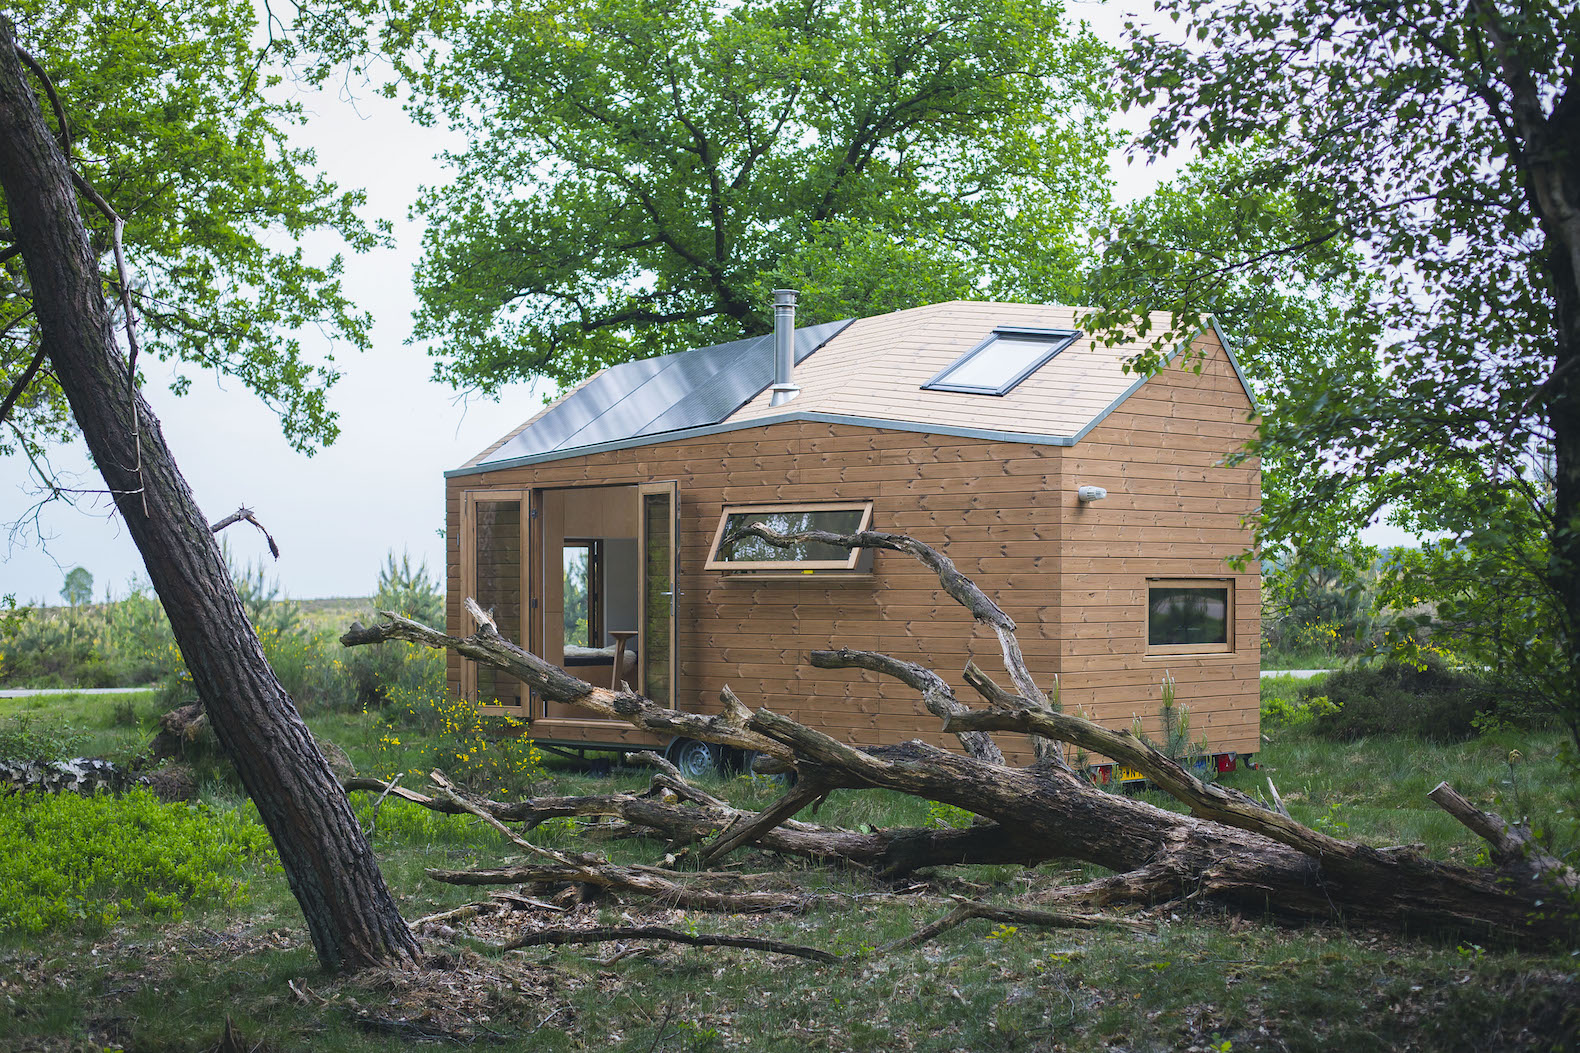 Cheerful Tiny Home Lets Owner Live Inhabitat Green Building Tiny Home Lets Owner Live Sale Washington Off Grid Homes Off Grid Homes Sale Colorado curbed Off Grid Homes For Sale